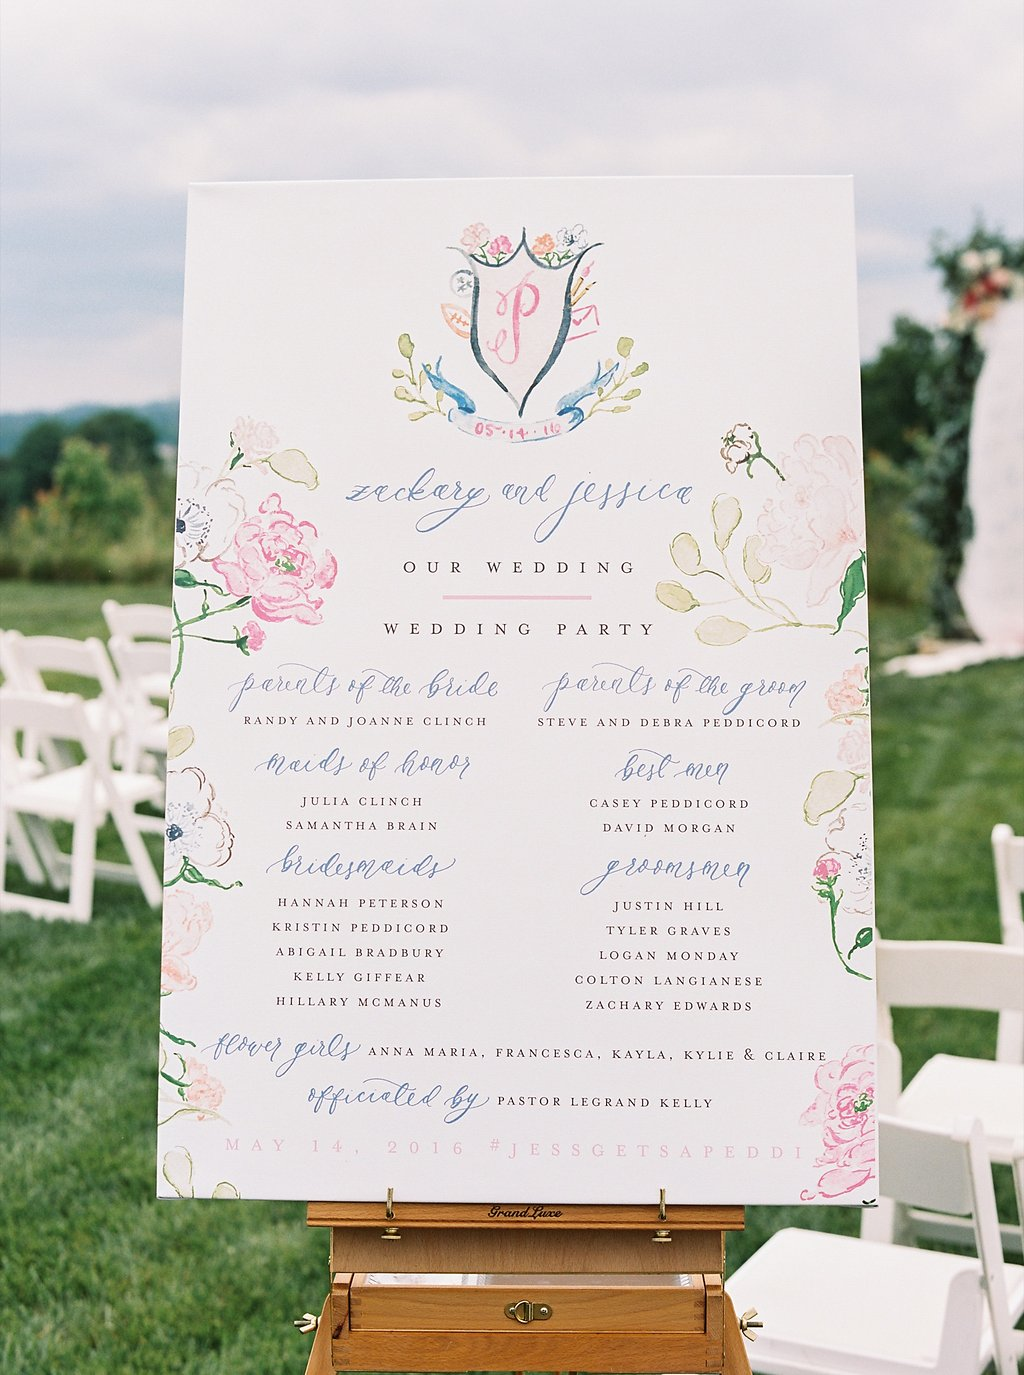 Watercolor and Calligraphy Program Sign Canvas | Artistic Wedding Program Alternative | Blush and Navy Wedding with Fuchsia, French Blue and Gold Accents | Simply Jessica Marie's Southern Wedding at Gettysvue Golf Course and Country Club in Knoxville Tennessee | Photo by Perry Vaile Photography